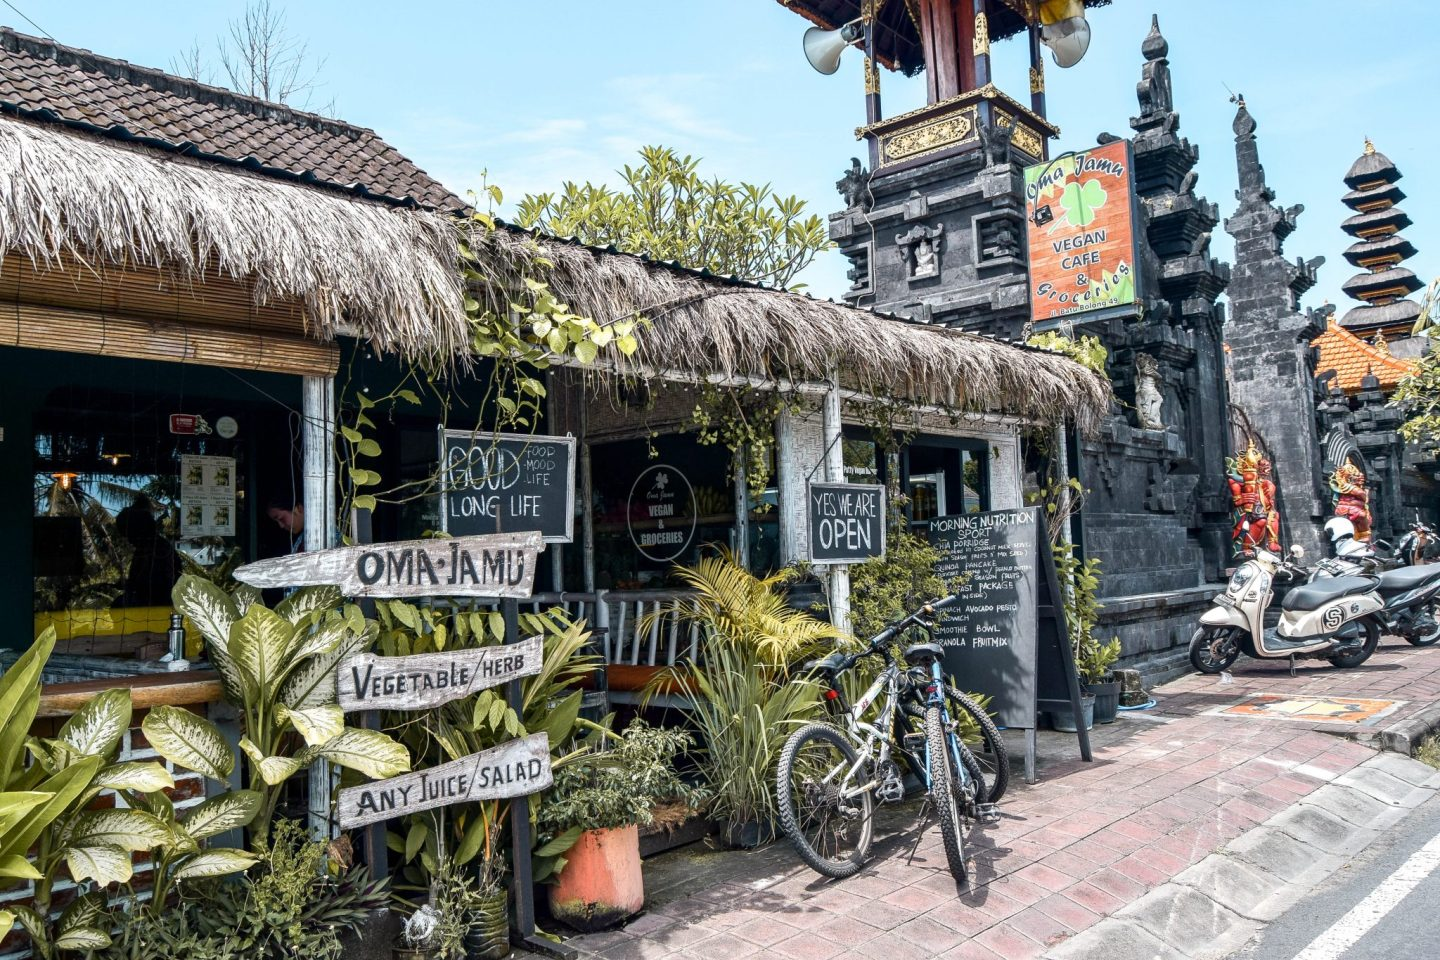 Wanderers & Warriors - Oma Jamu Vegan Cafe - The Best Warungs In Canggu - Where To Eat Local